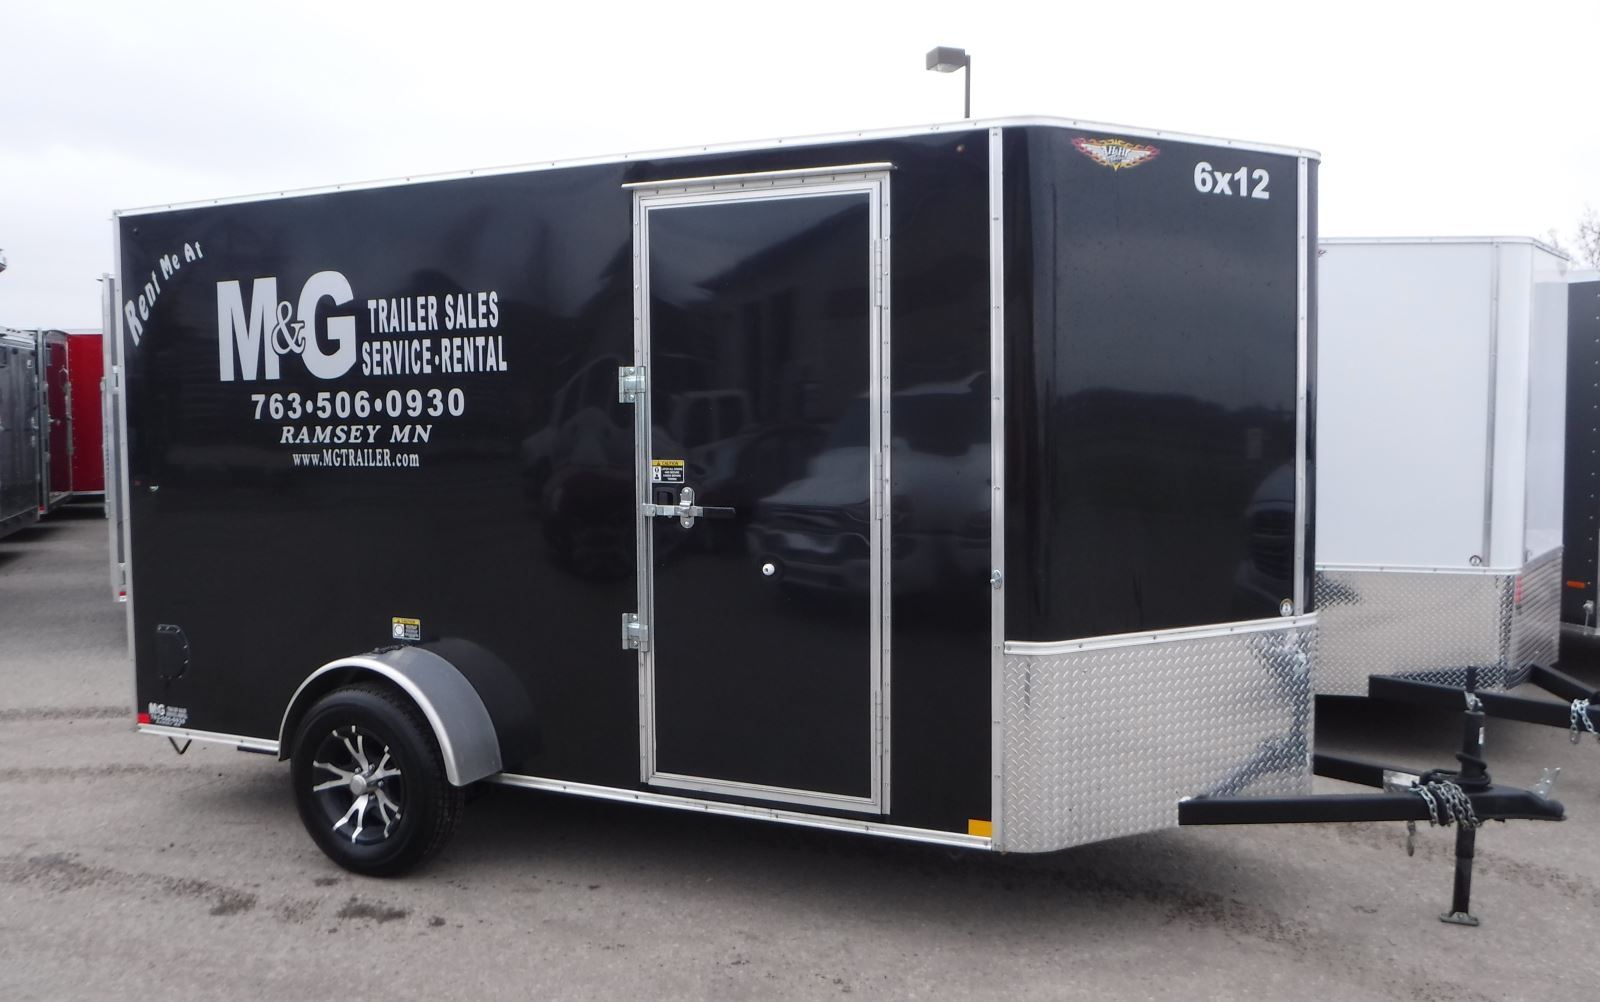 6x12 single axle enclosed trailer rental